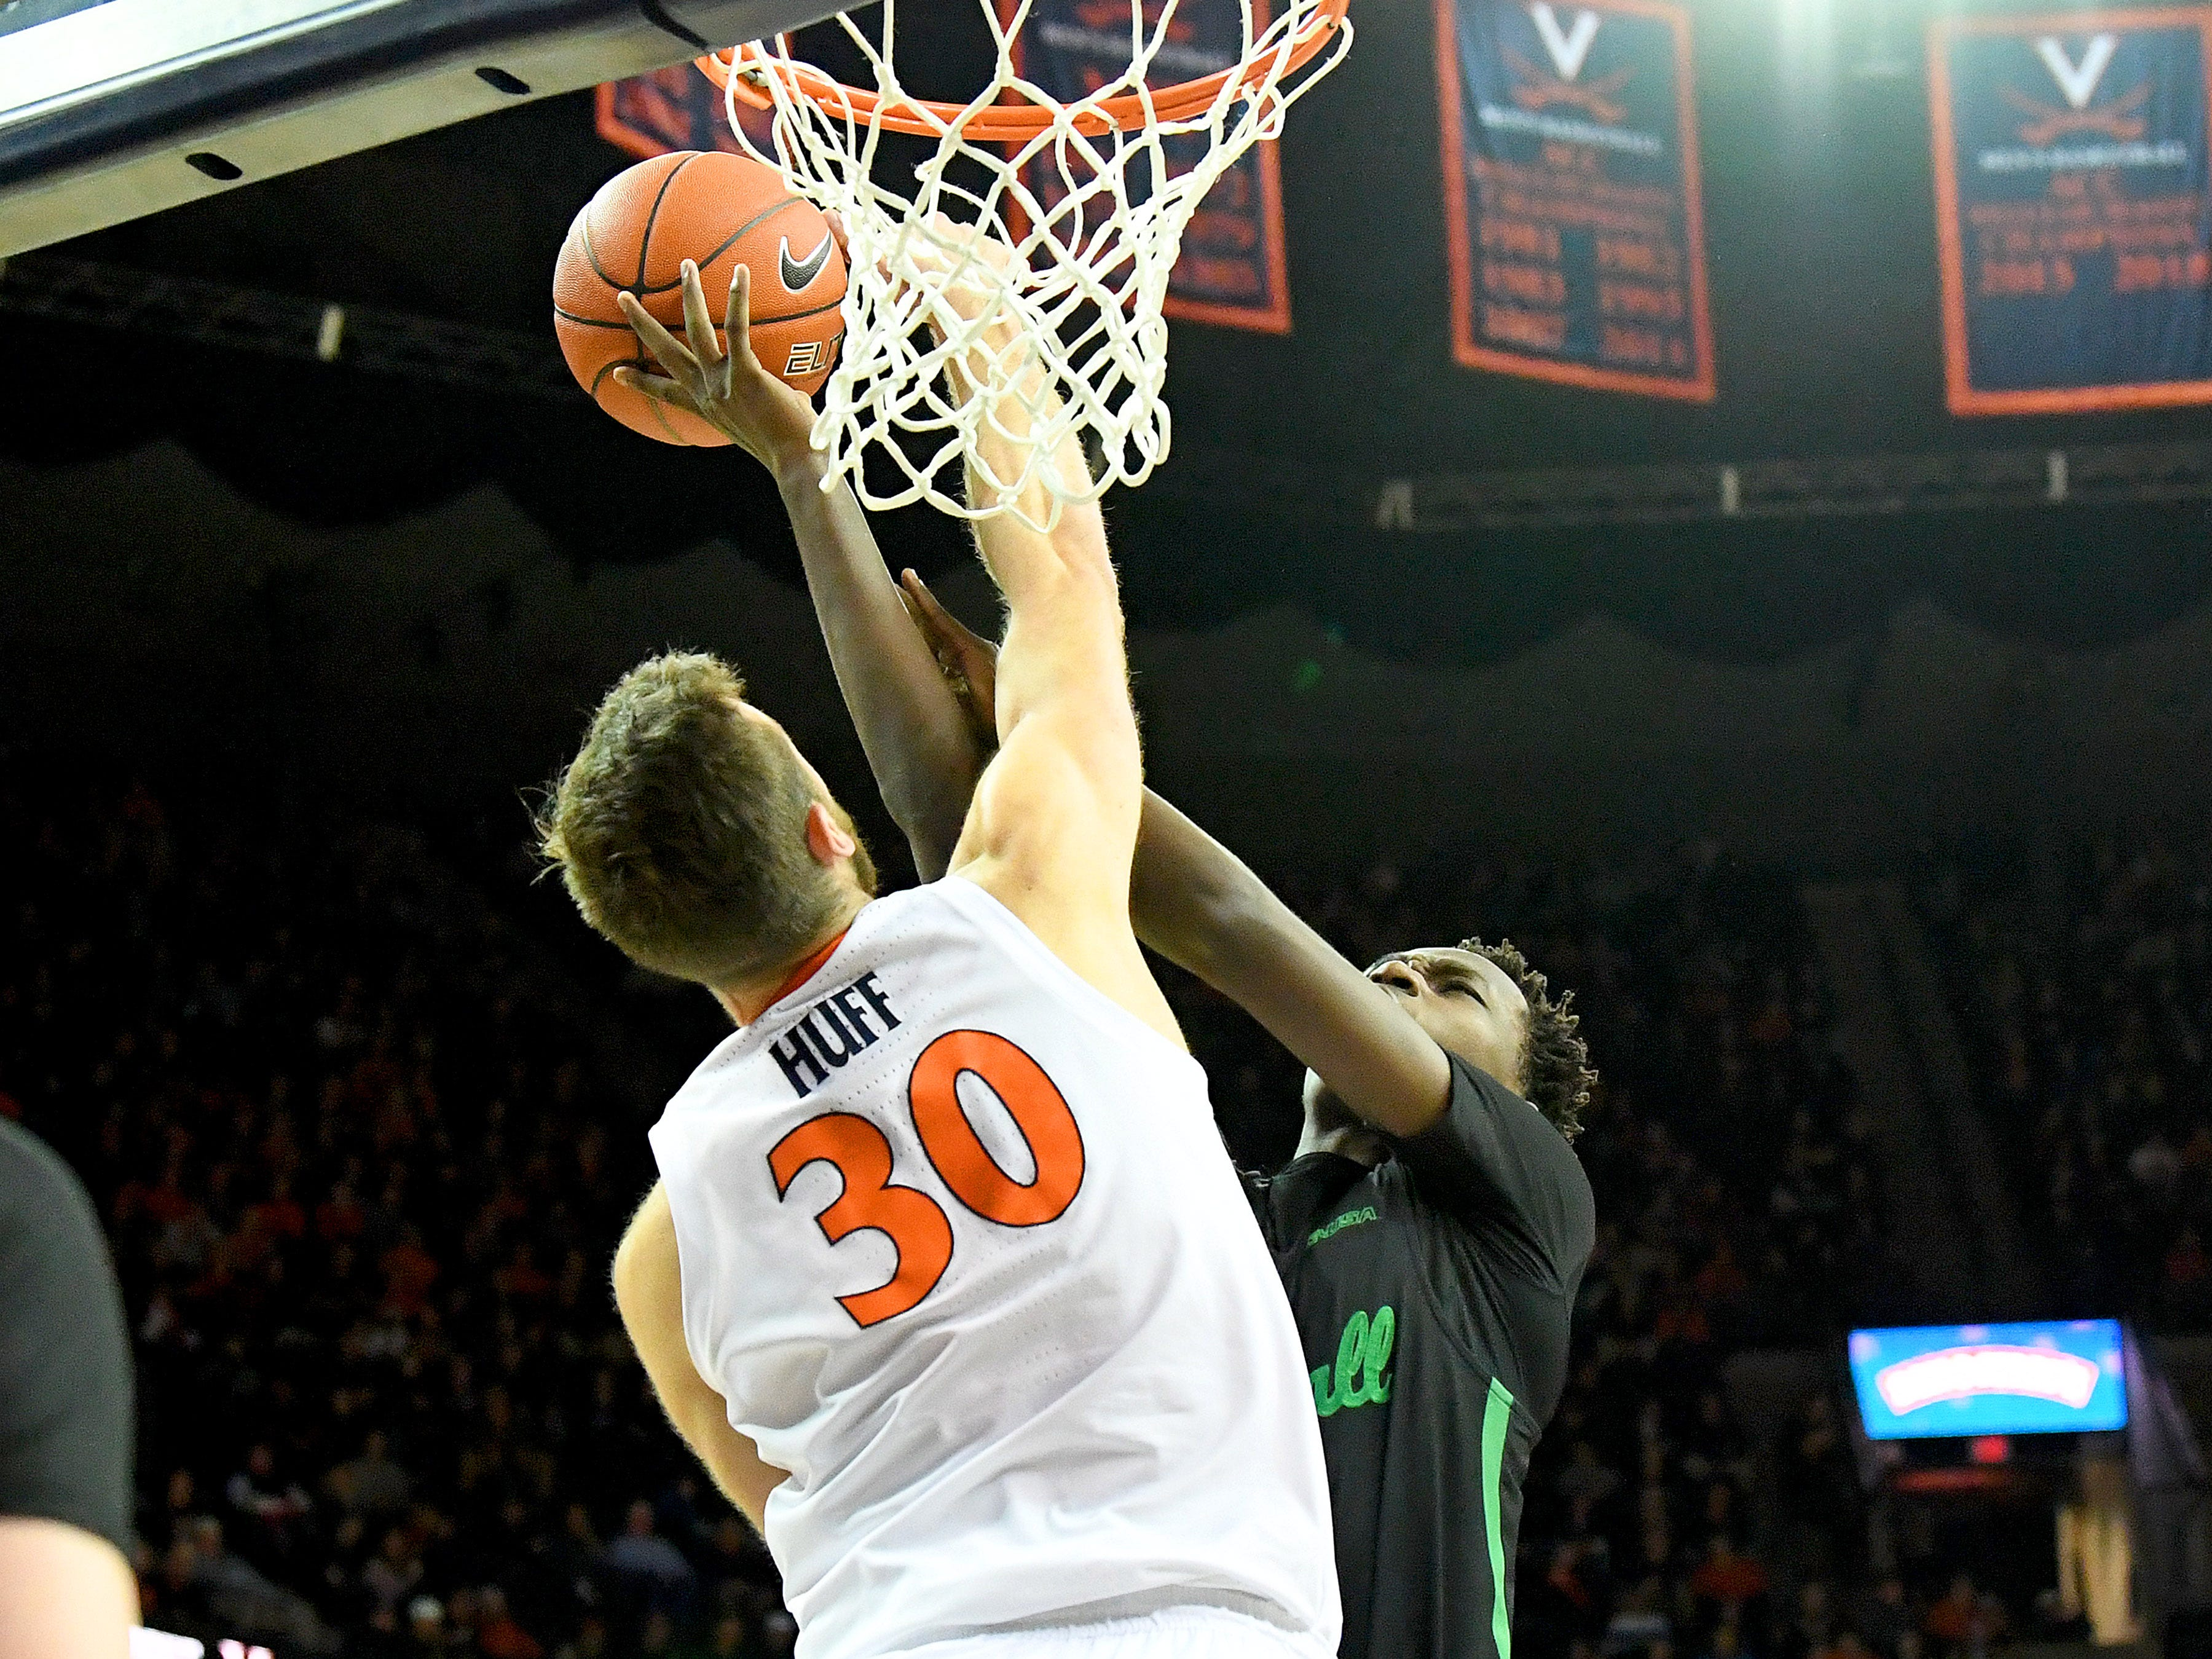 Marshall's Darius George, former R.E. Lee star, tries to get the ball in the basket while guarded by Virginia's Jay Huff during their game against University of Virginia, played at the John Paul Jones Arena on Dec. 31, 2016.